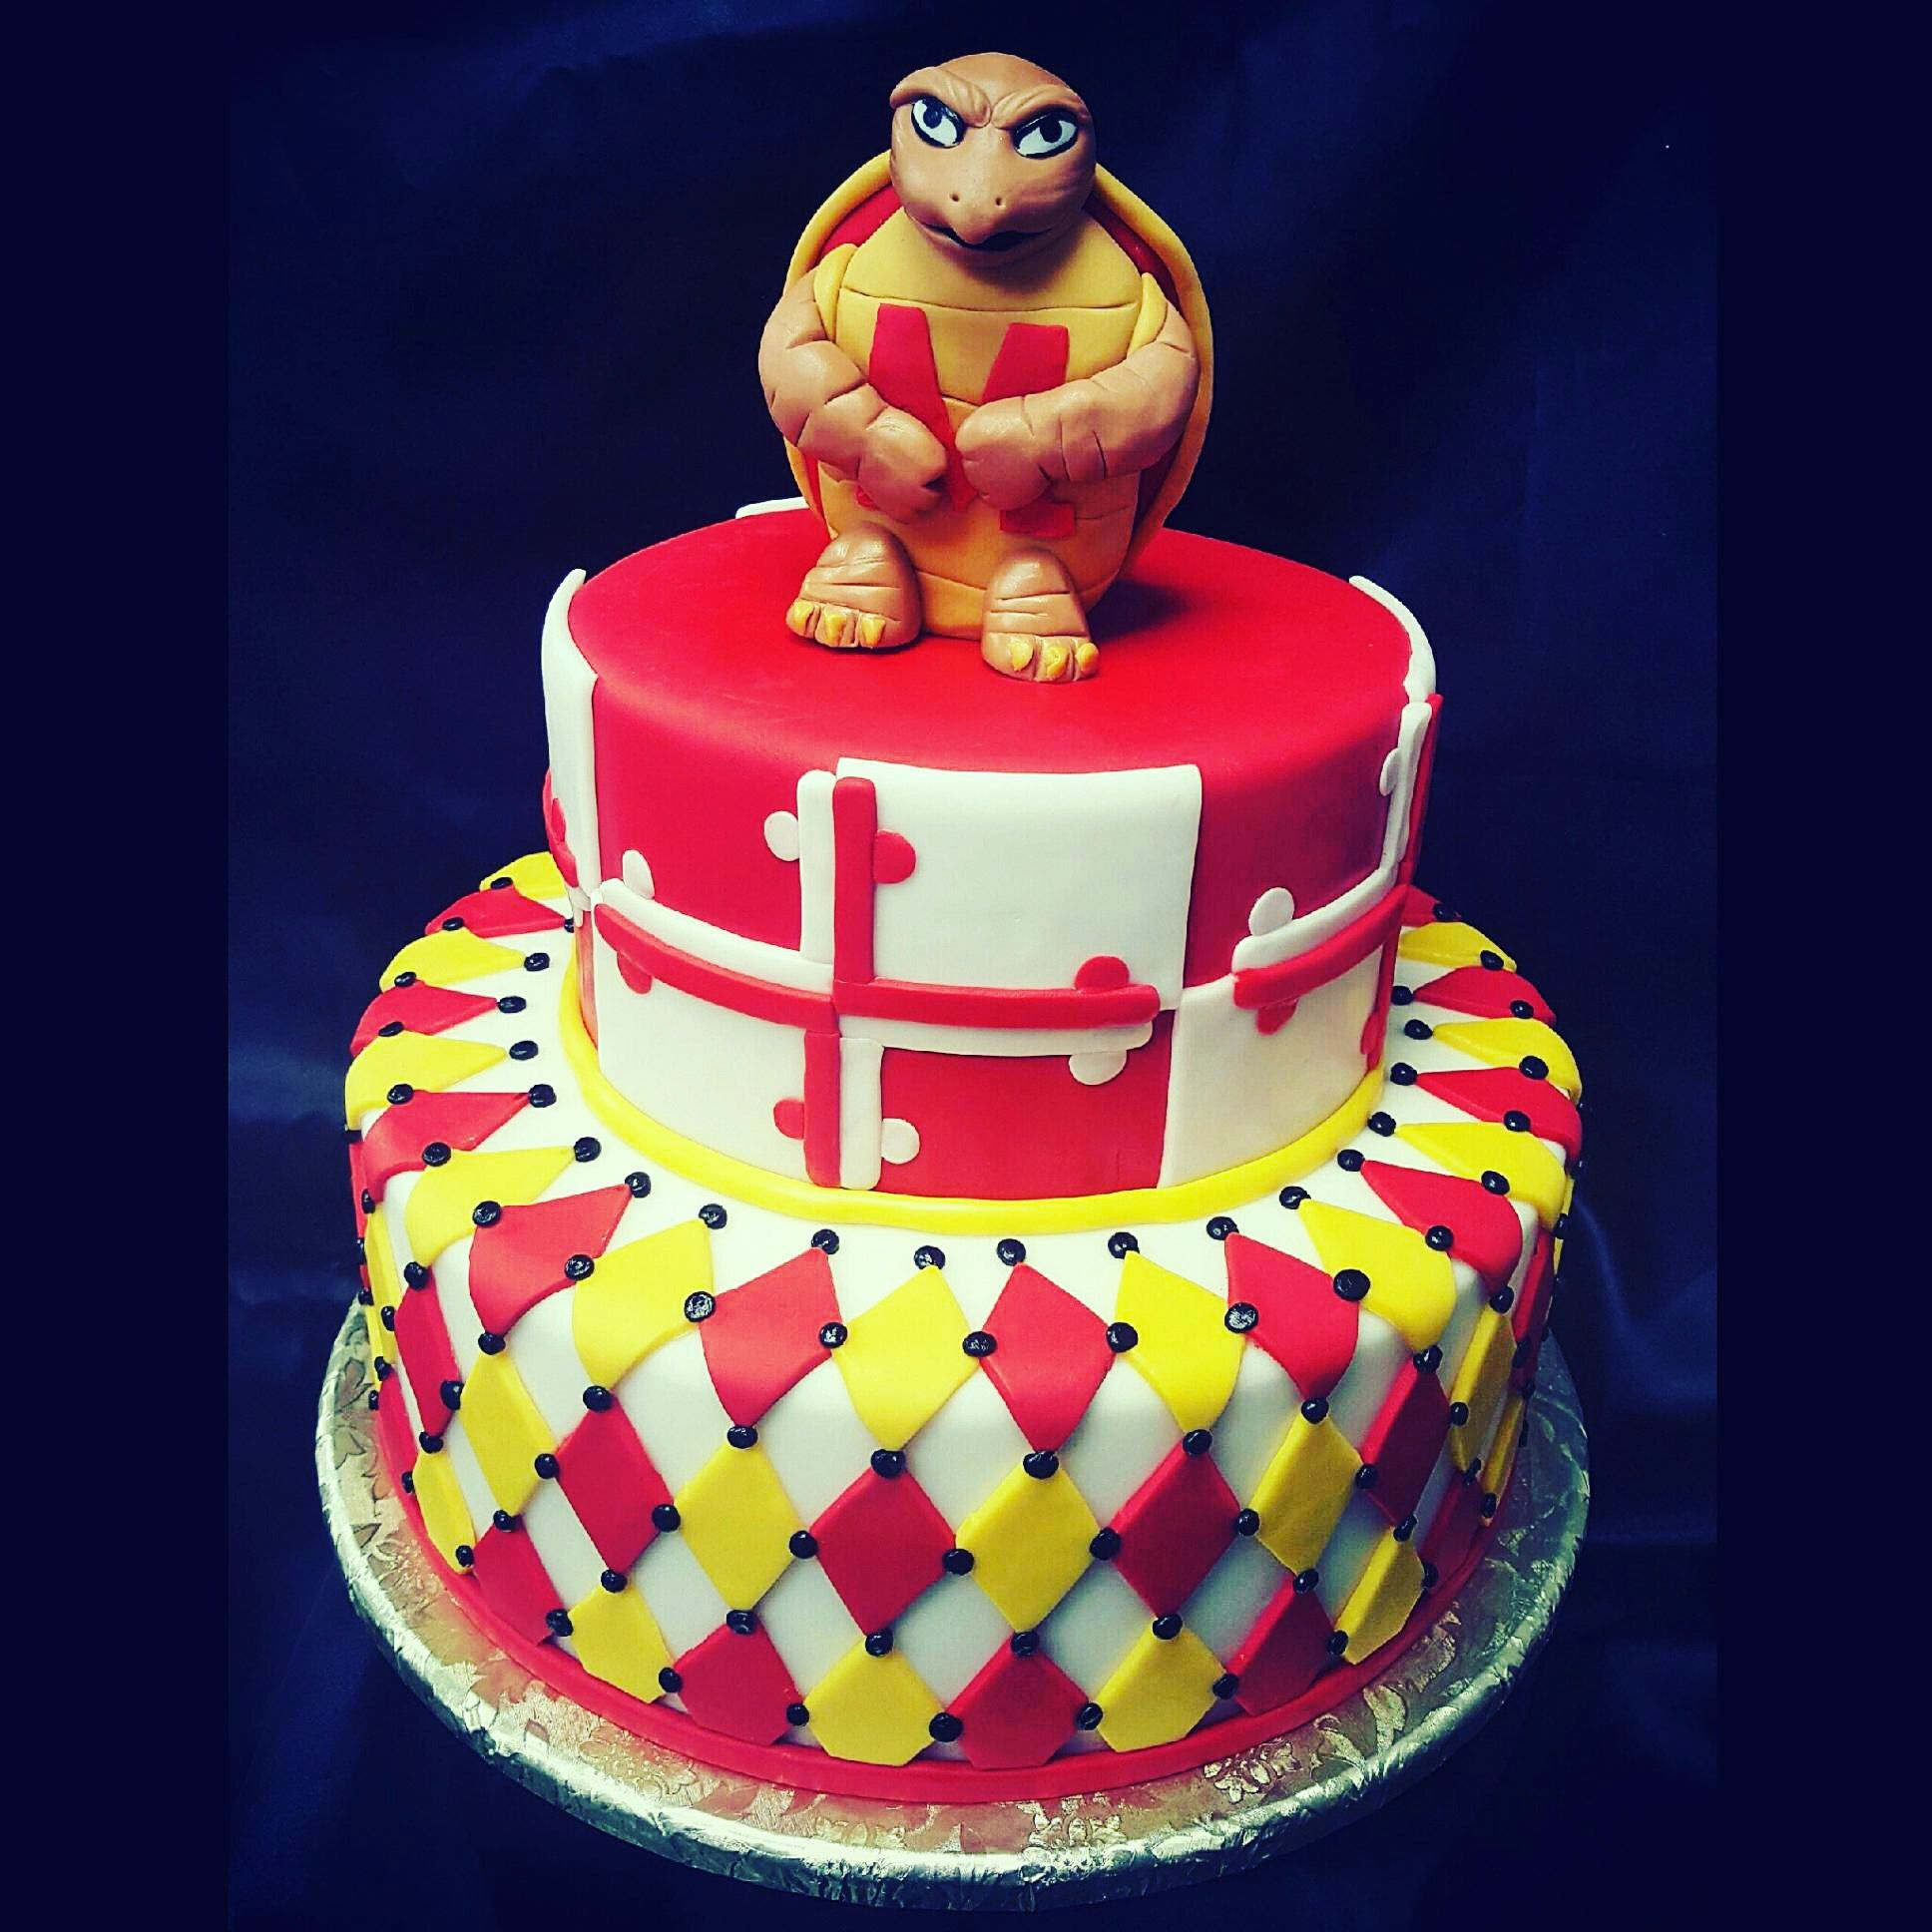 Maryland Terrapin Cake Specialty Cakes by SugarBakers Cakes